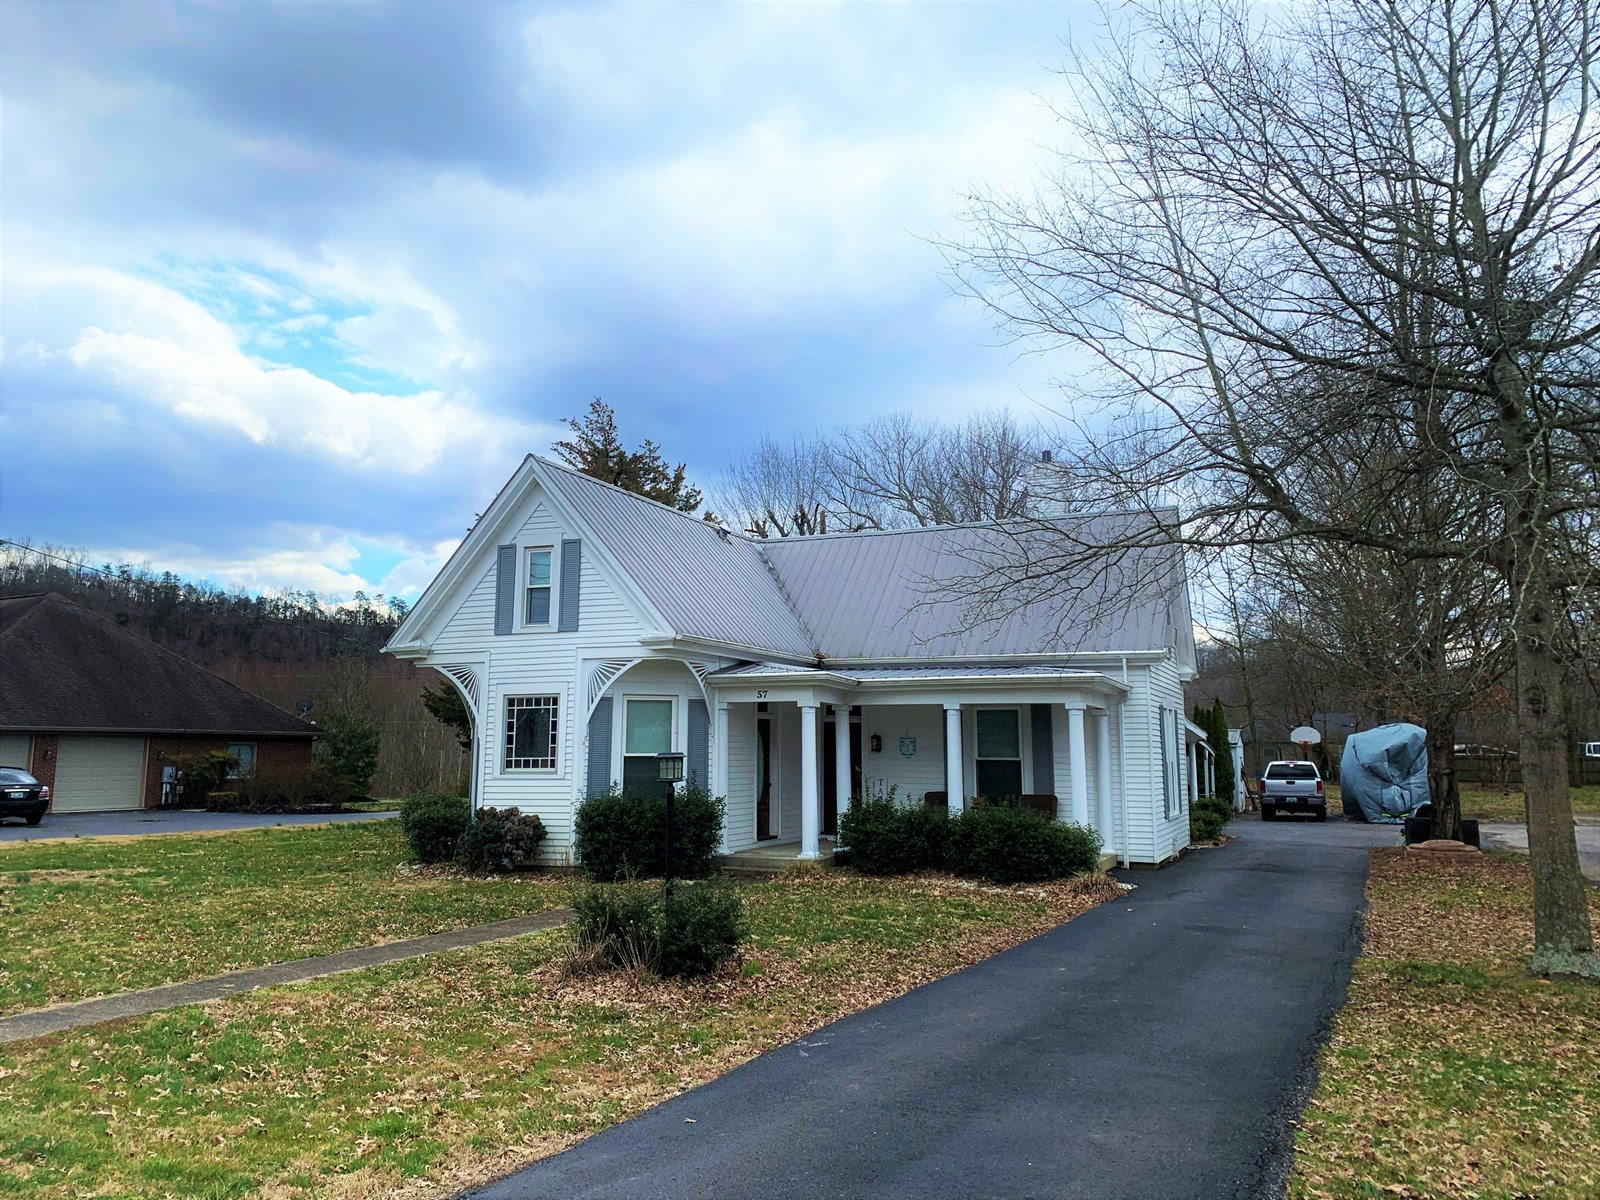 REMODELED HISTORICAL HOME IN TOWN - LIBERTY KENTUCKY